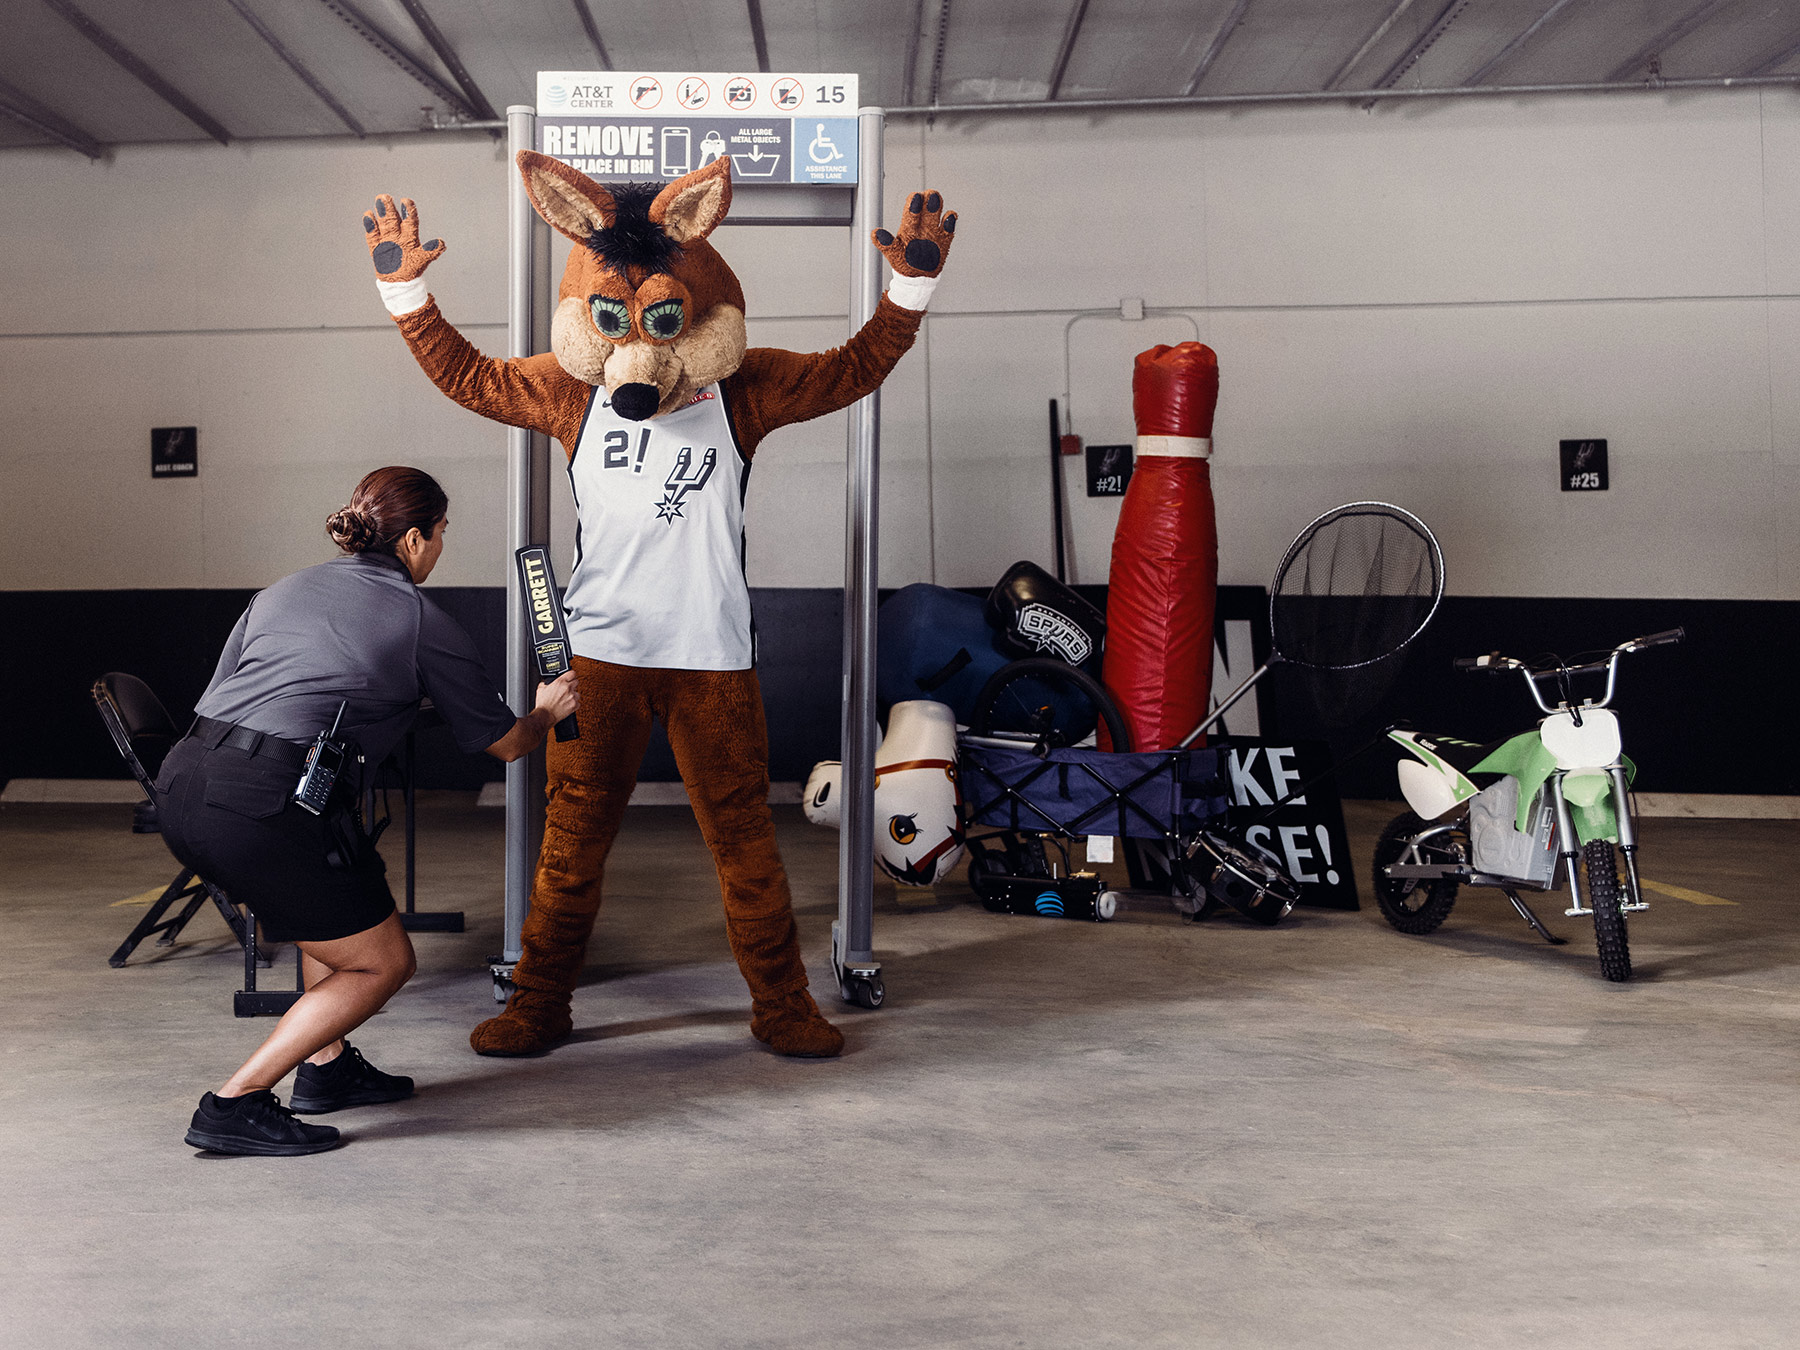 NBA Mascot, Spurs Coyote, photographed at the AT&T Center by sports and editorial photographer, Josh Huskin.